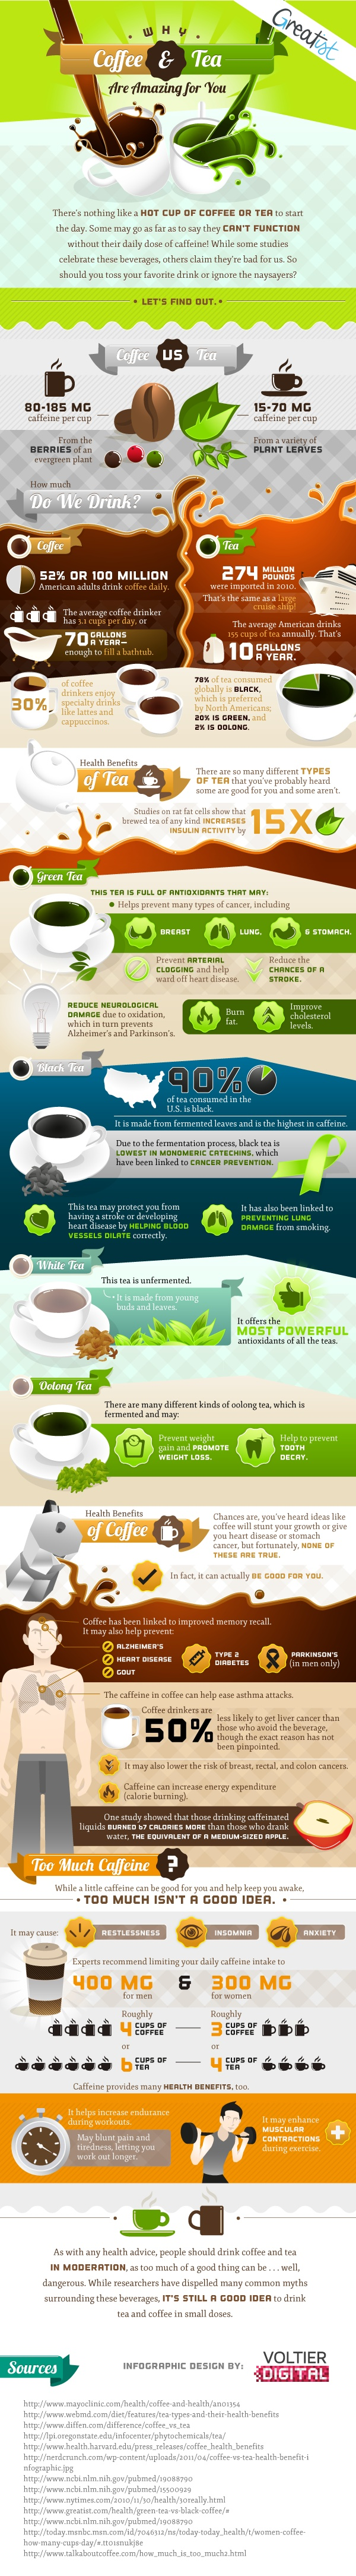 Why Coffee and Tea Are Amazing For You. [Infographic Compares Benefits and Differences Between Coffee And Tea]